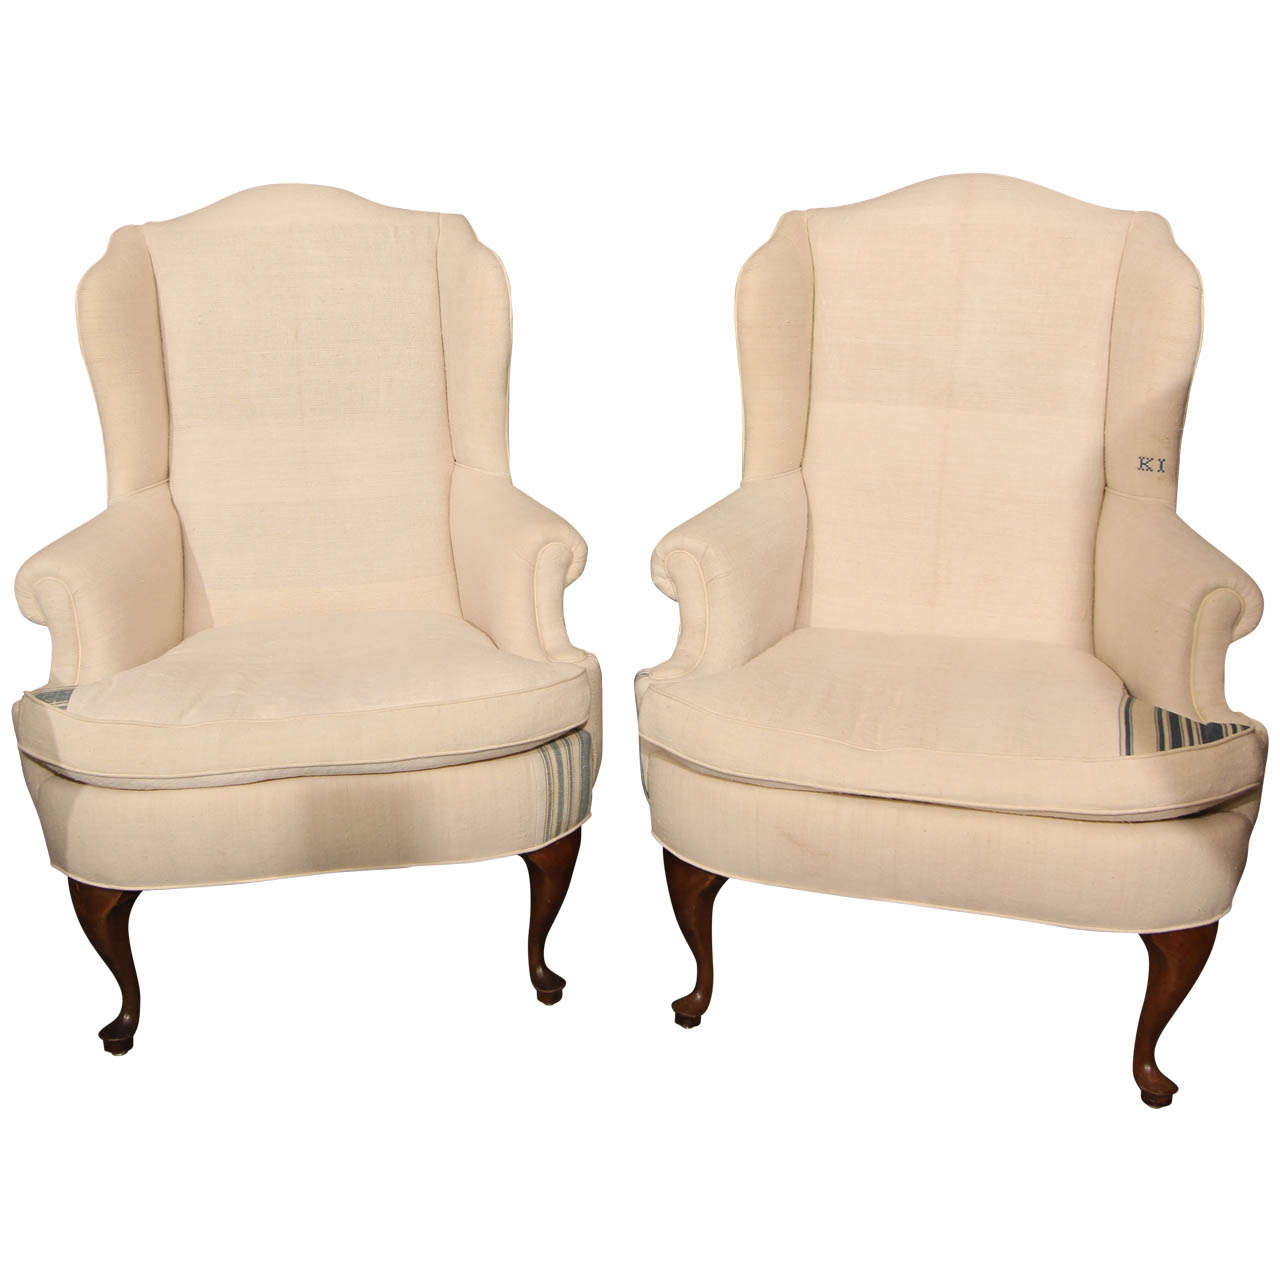 Pair Linen Rolled Arm Chairs For Sale at 1stdibs